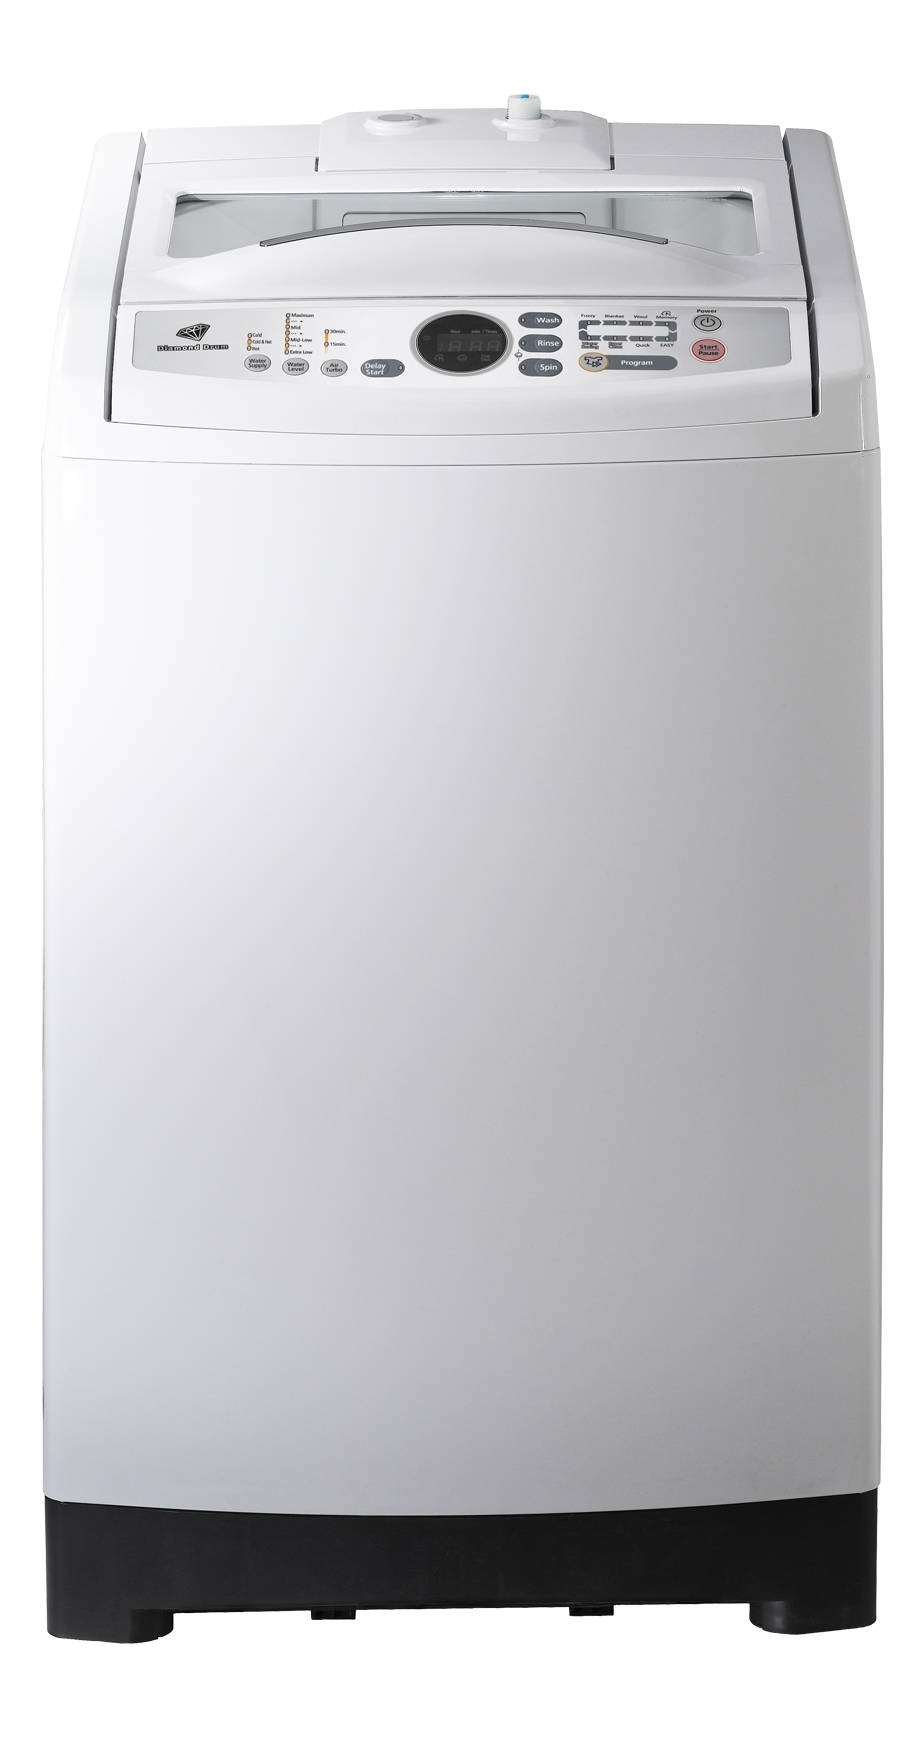 samsung top load washing machine recall samsung australia rh samsung com